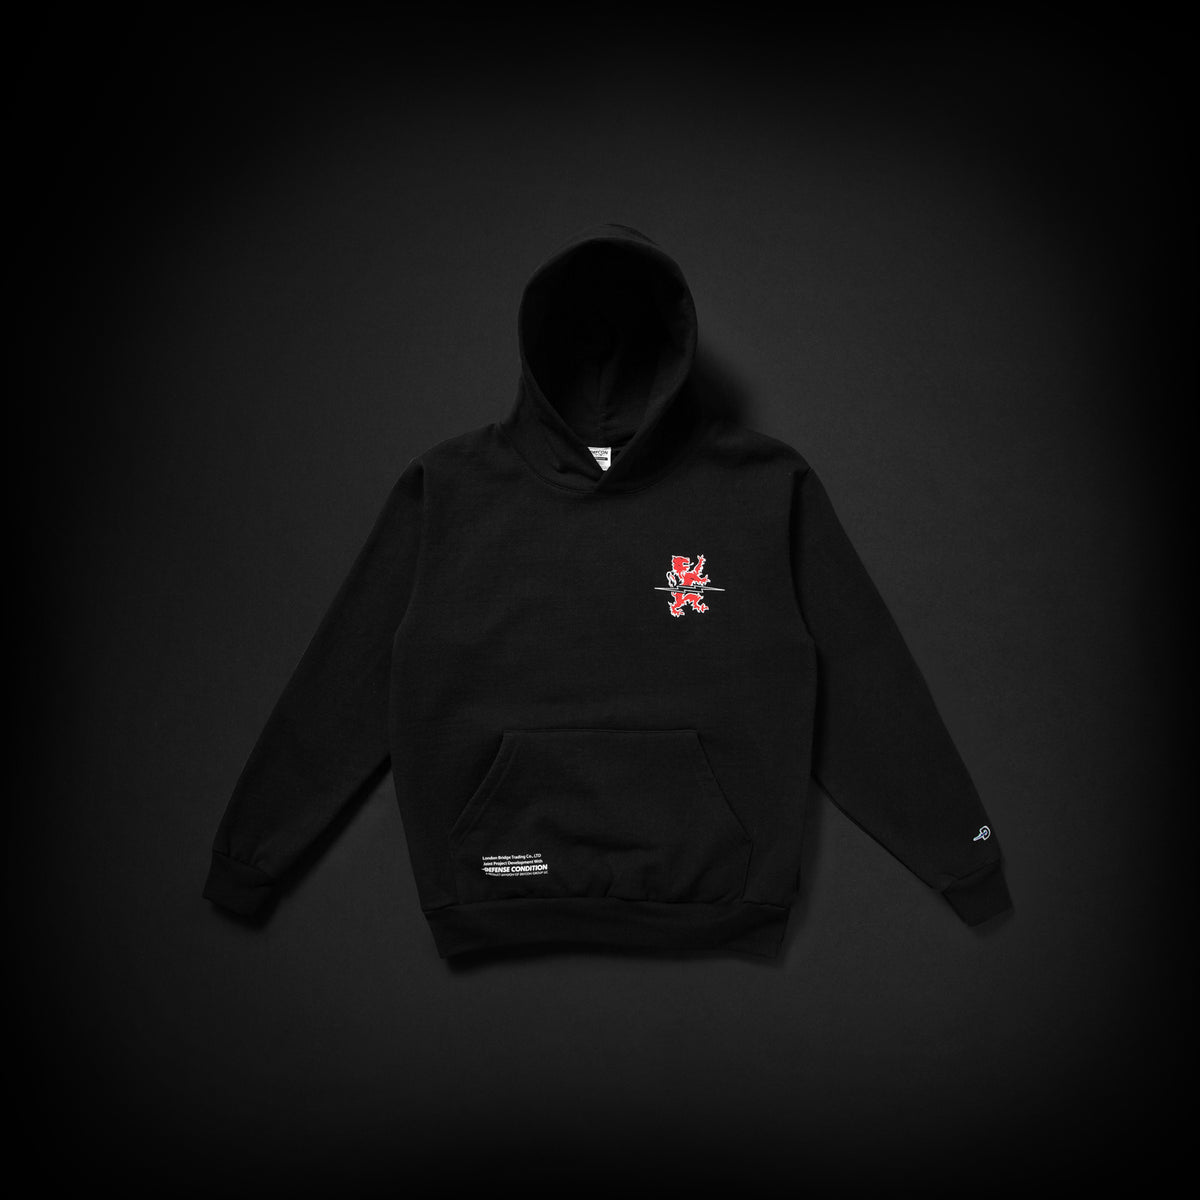 DEFCON LBT HOODED SWEATSHIRT - BLACK